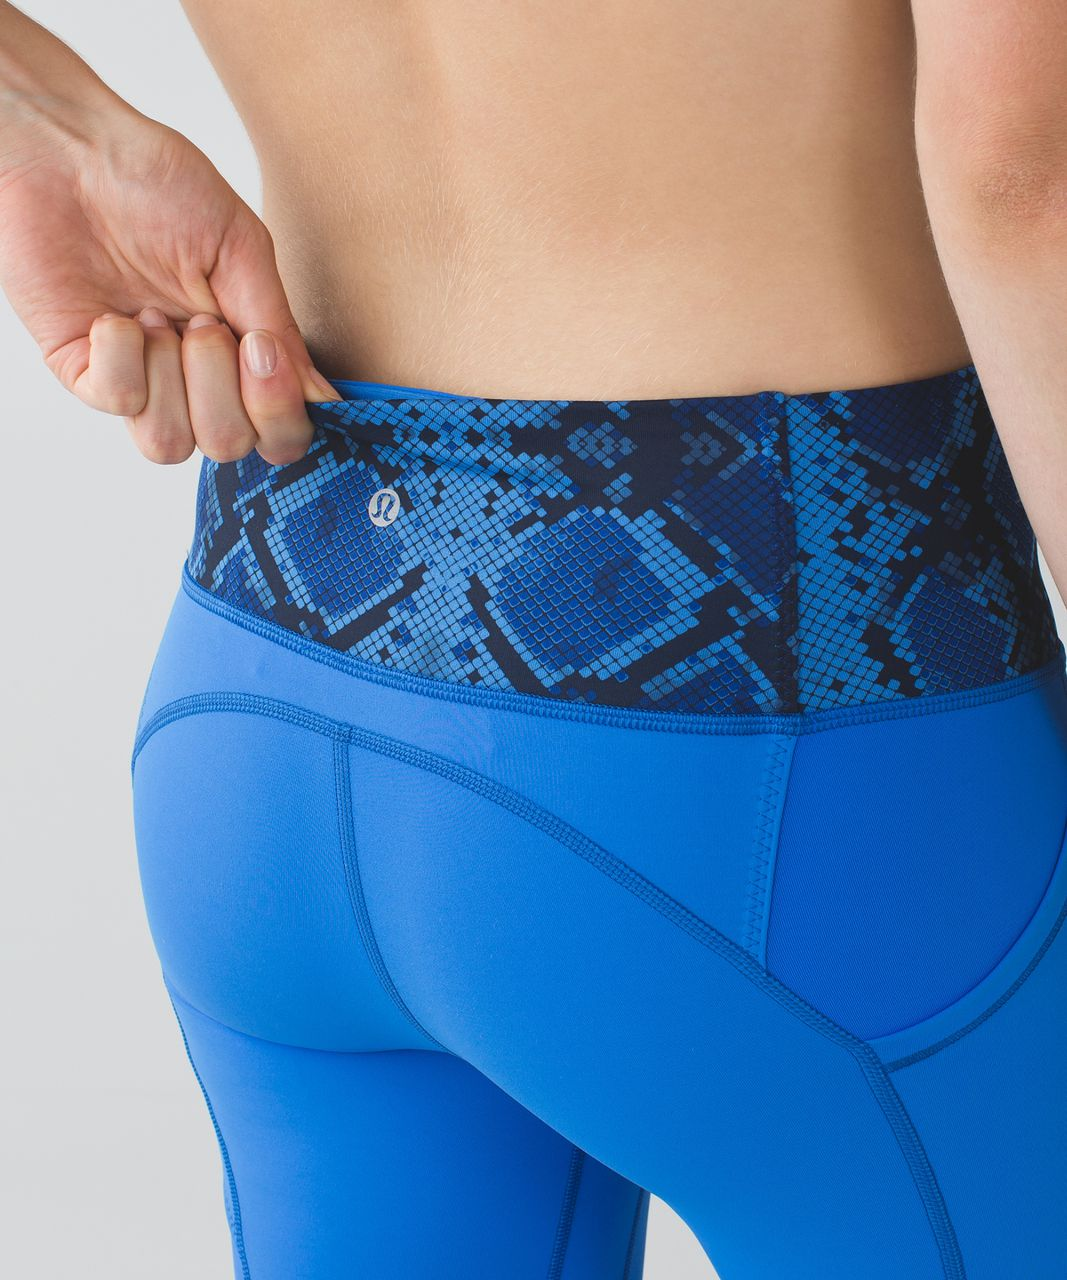 Lululemon All The Right Places Crop - Pipe Dream Blue / Mini Ziggy Snake Pipe Dream Blue Sapphire Blue